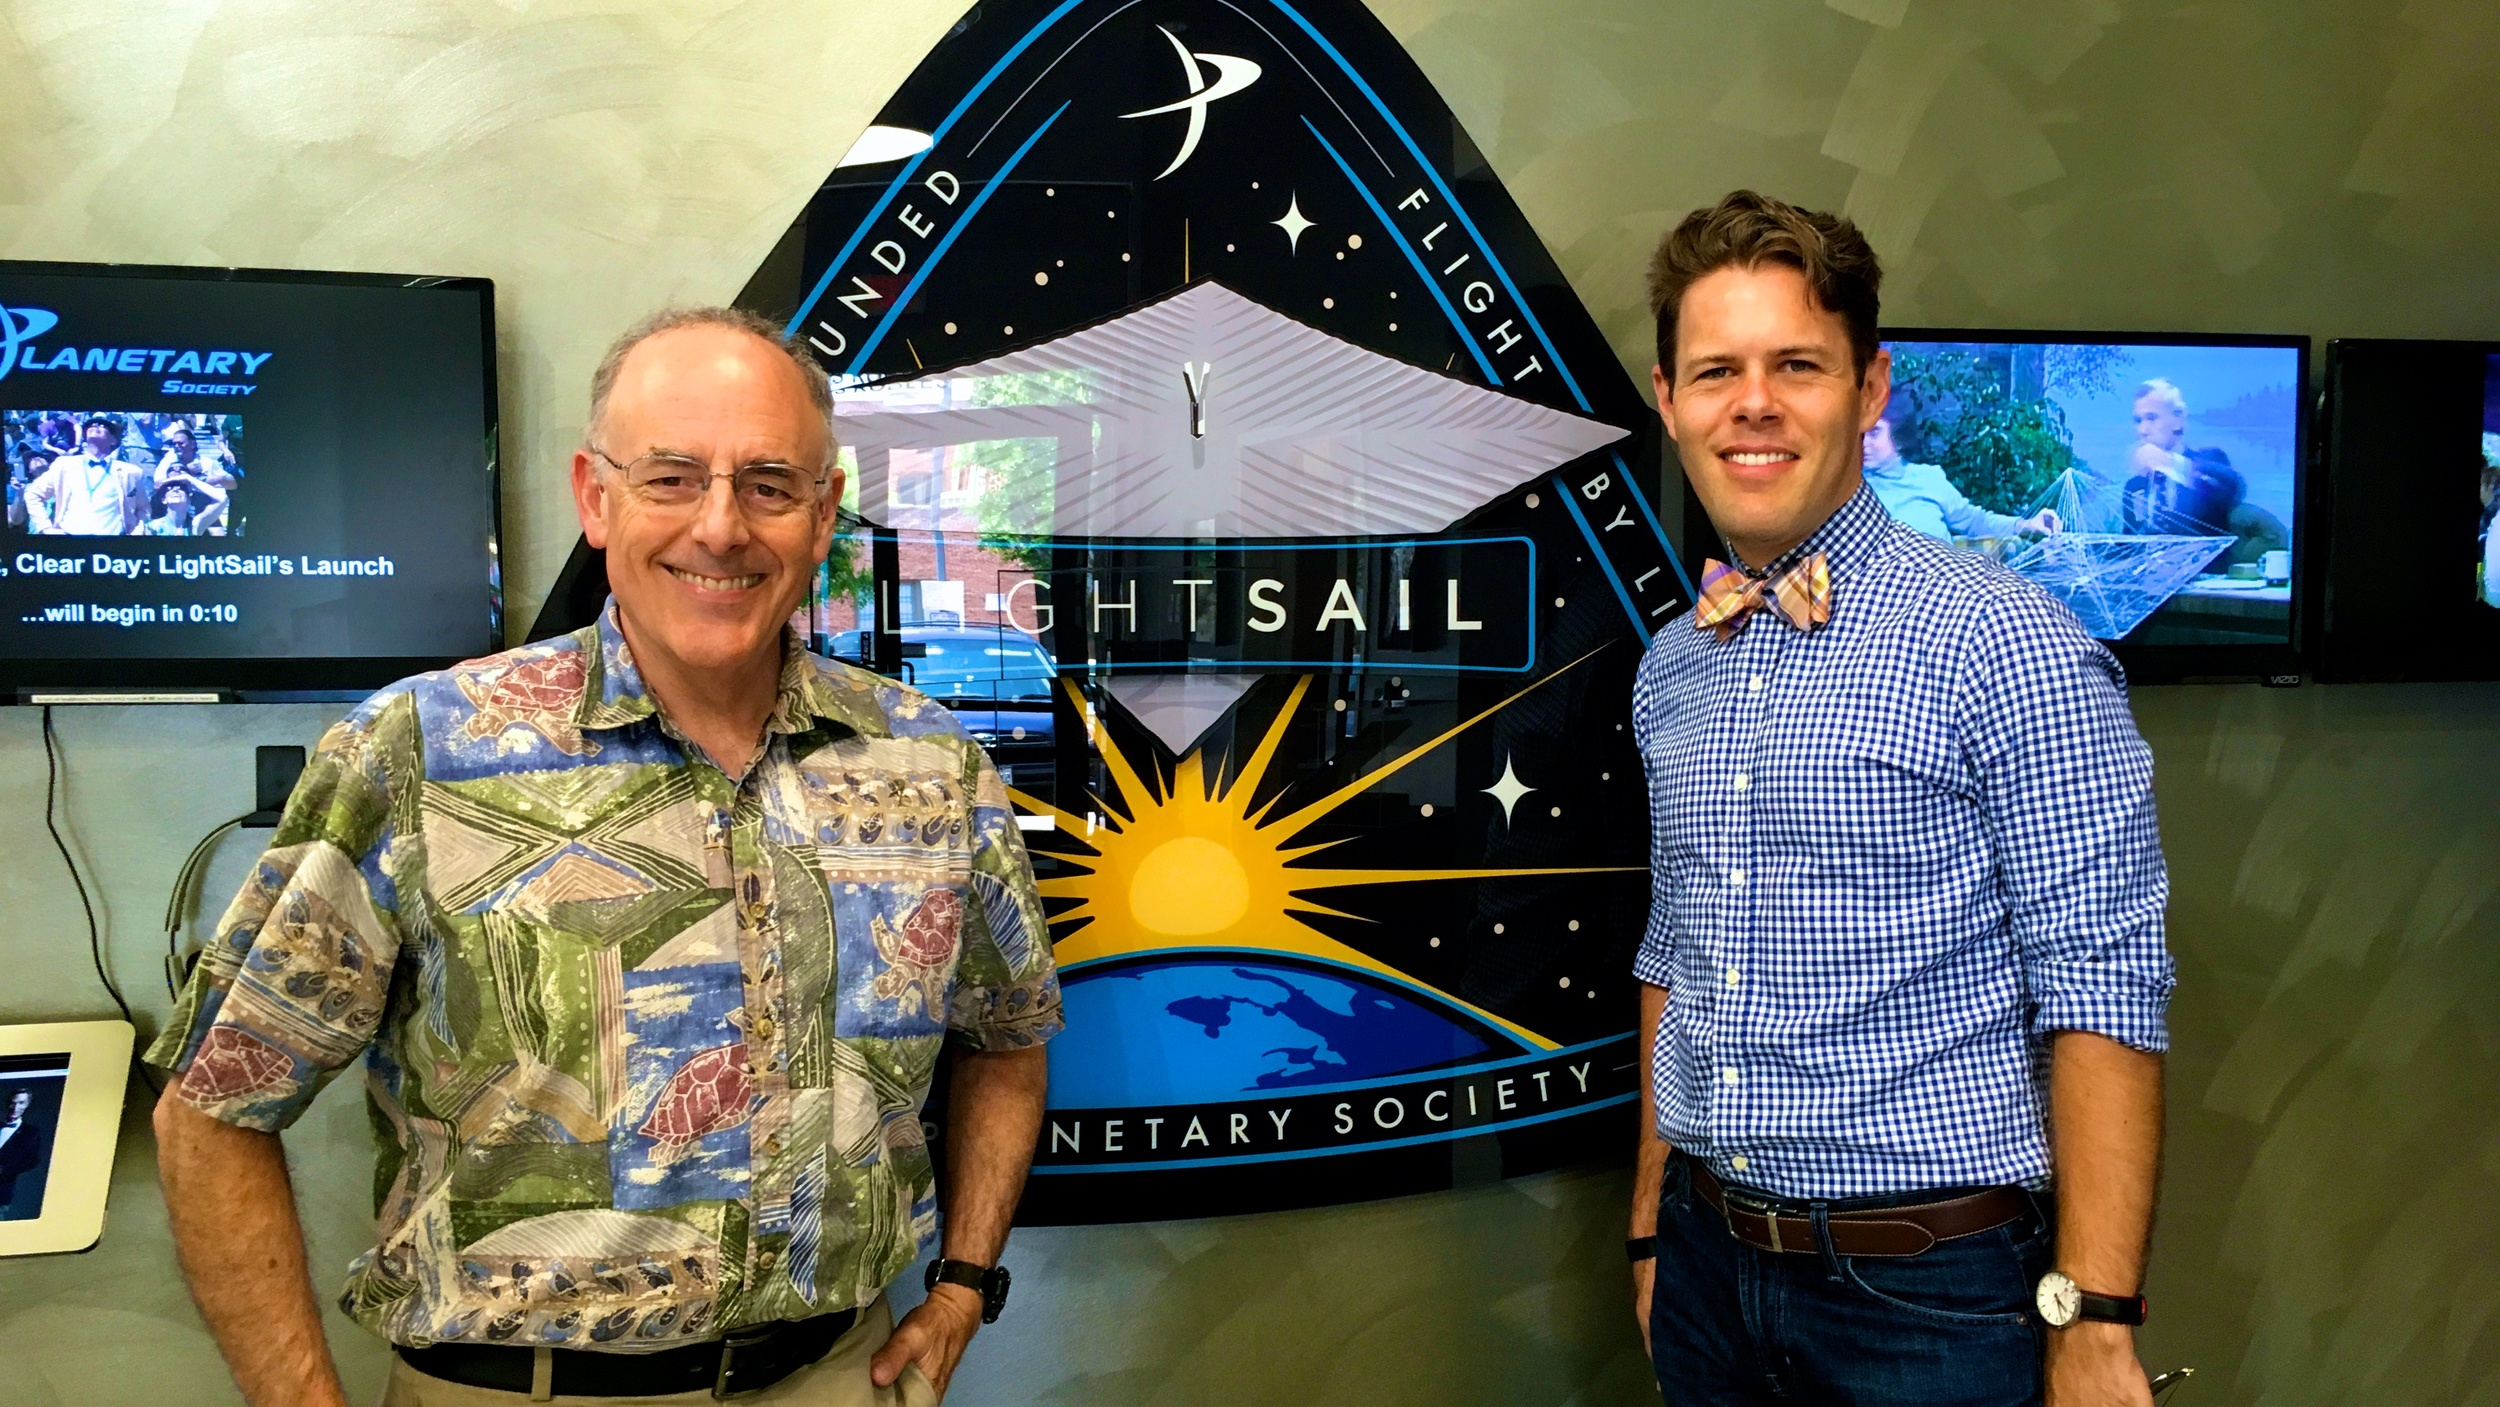 With Mat Kaplan, host of Planetary Radio at the Planetary Society in Pasadena, CA.